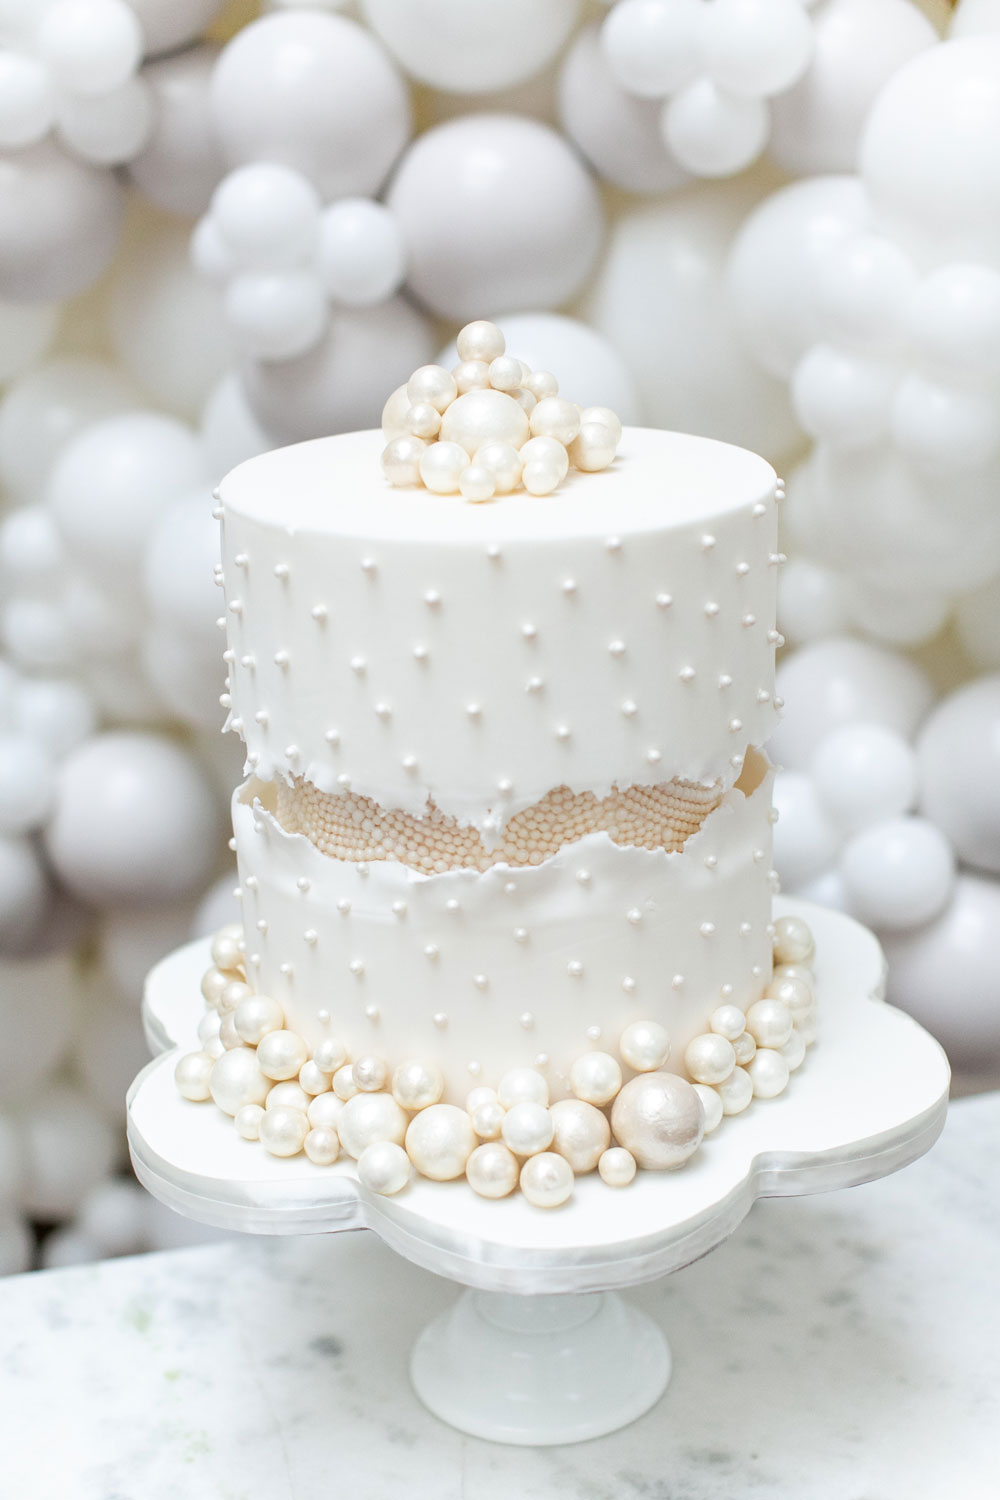 fault-line-pearl-luxury-wedding-cake-from-elizabeths-cake-emporium